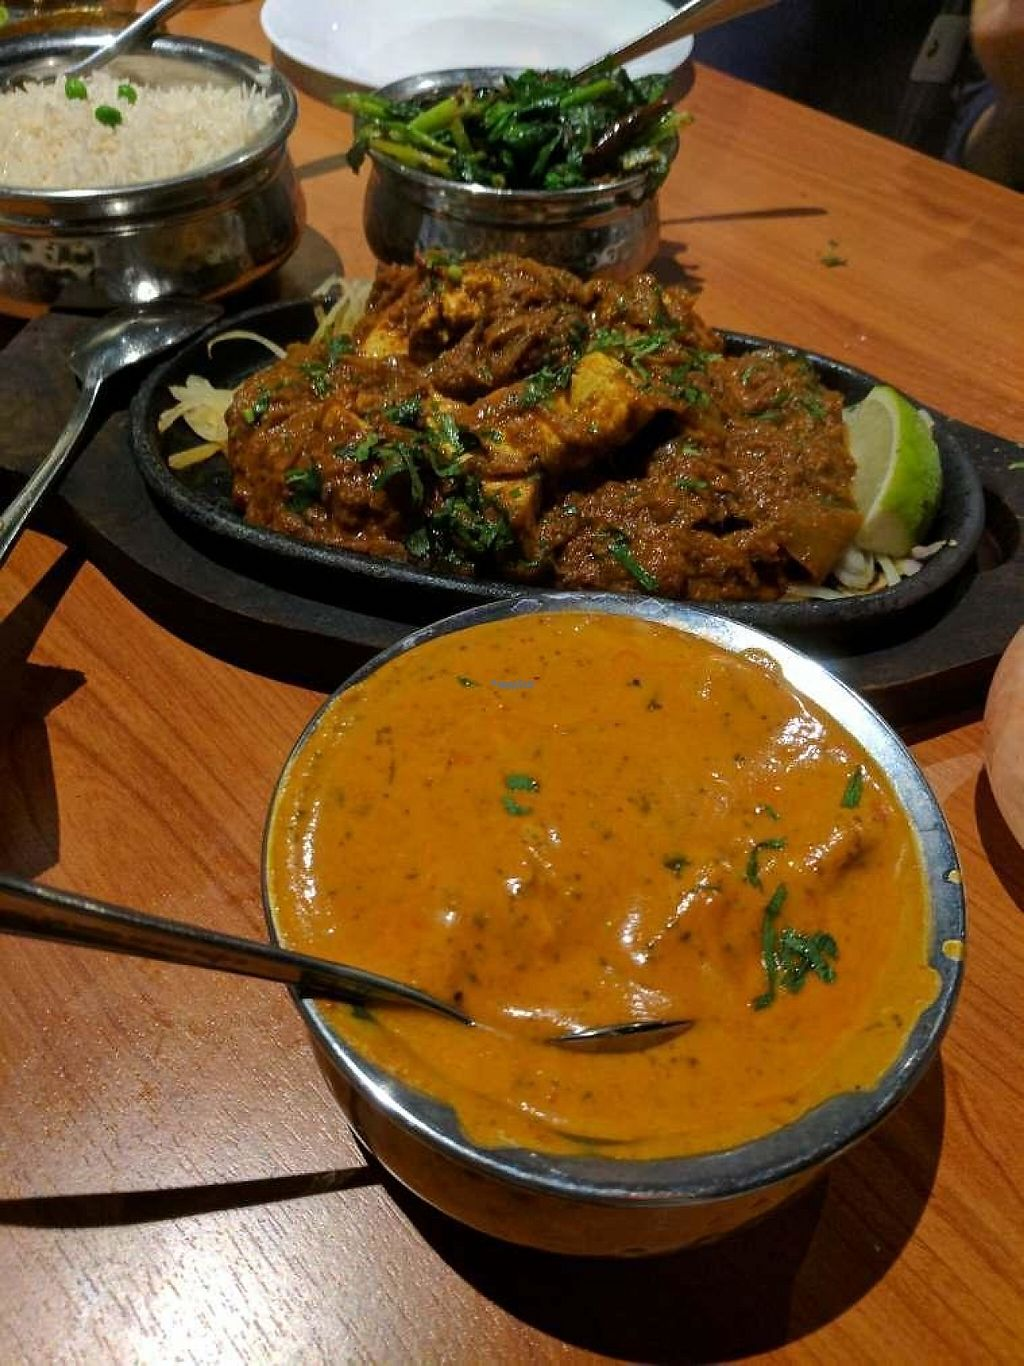 """Photo of Ambrosia India Bistro  by <a href=""""/members/profile/Conniemm"""">Conniemm</a> <br/>tofu tikka and vegan butter chicken <br/> February 23, 2017  - <a href='/contact/abuse/image/84578/229523'>Report</a>"""